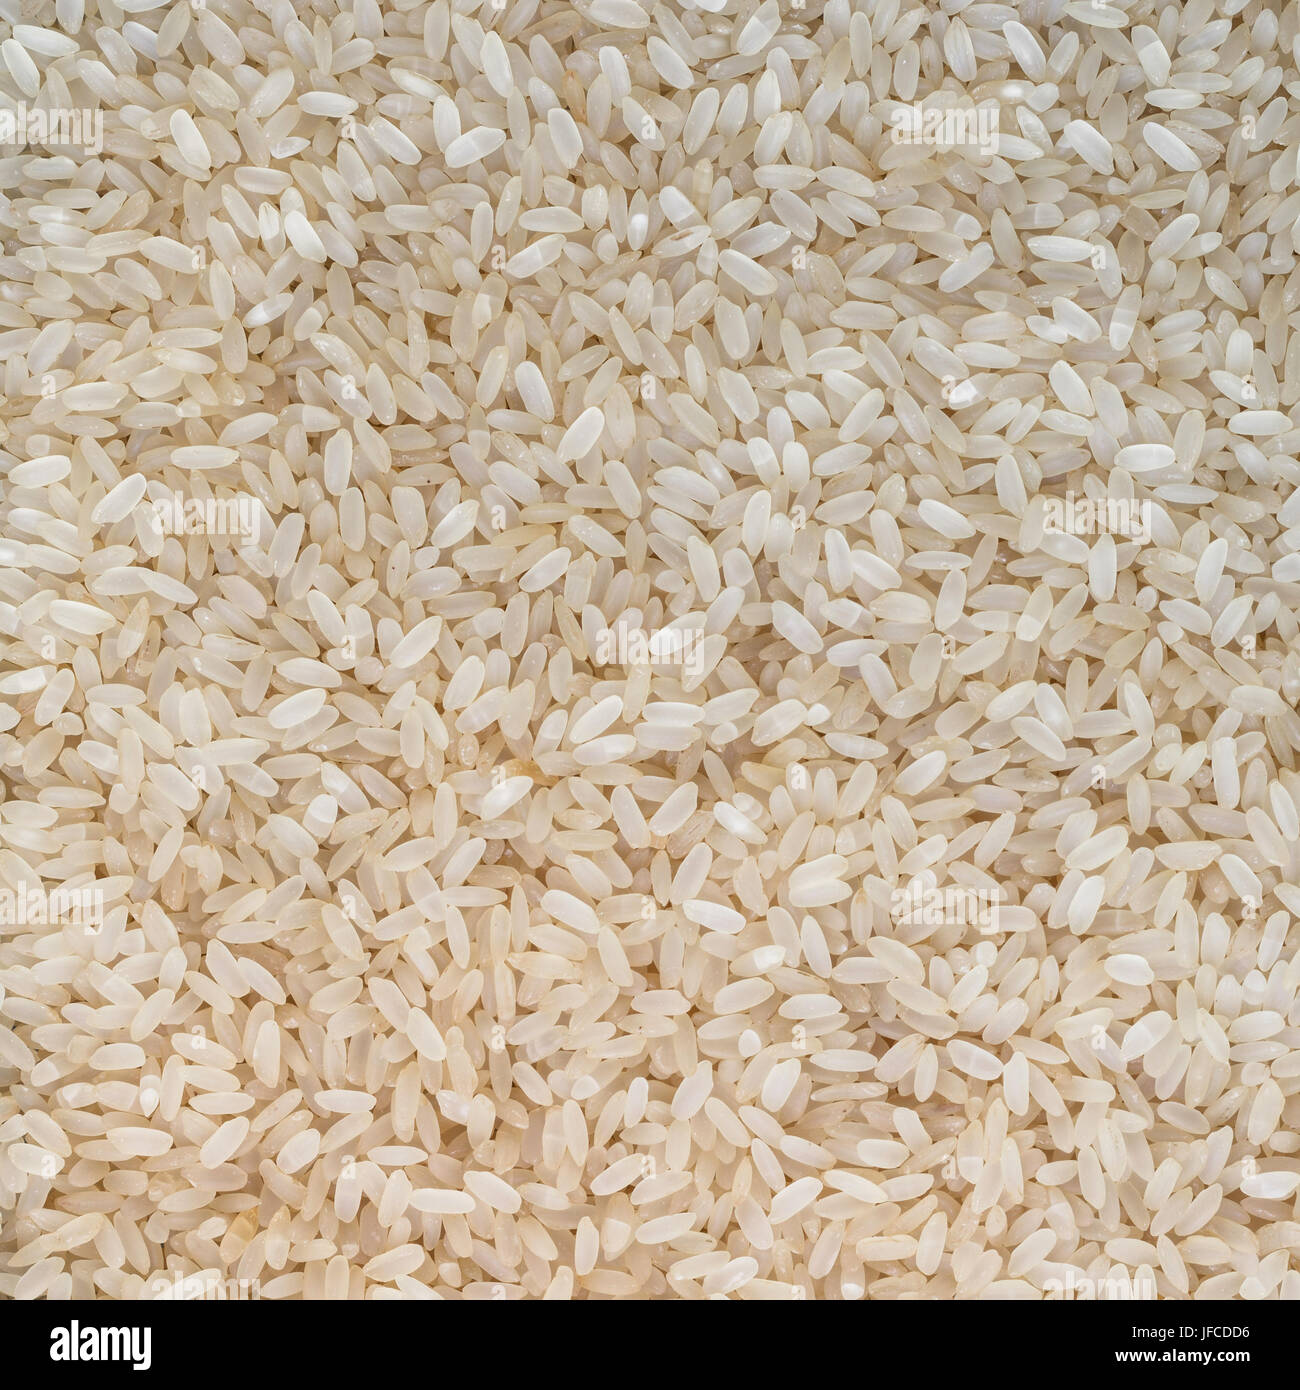 Grain rice background - Stock Image